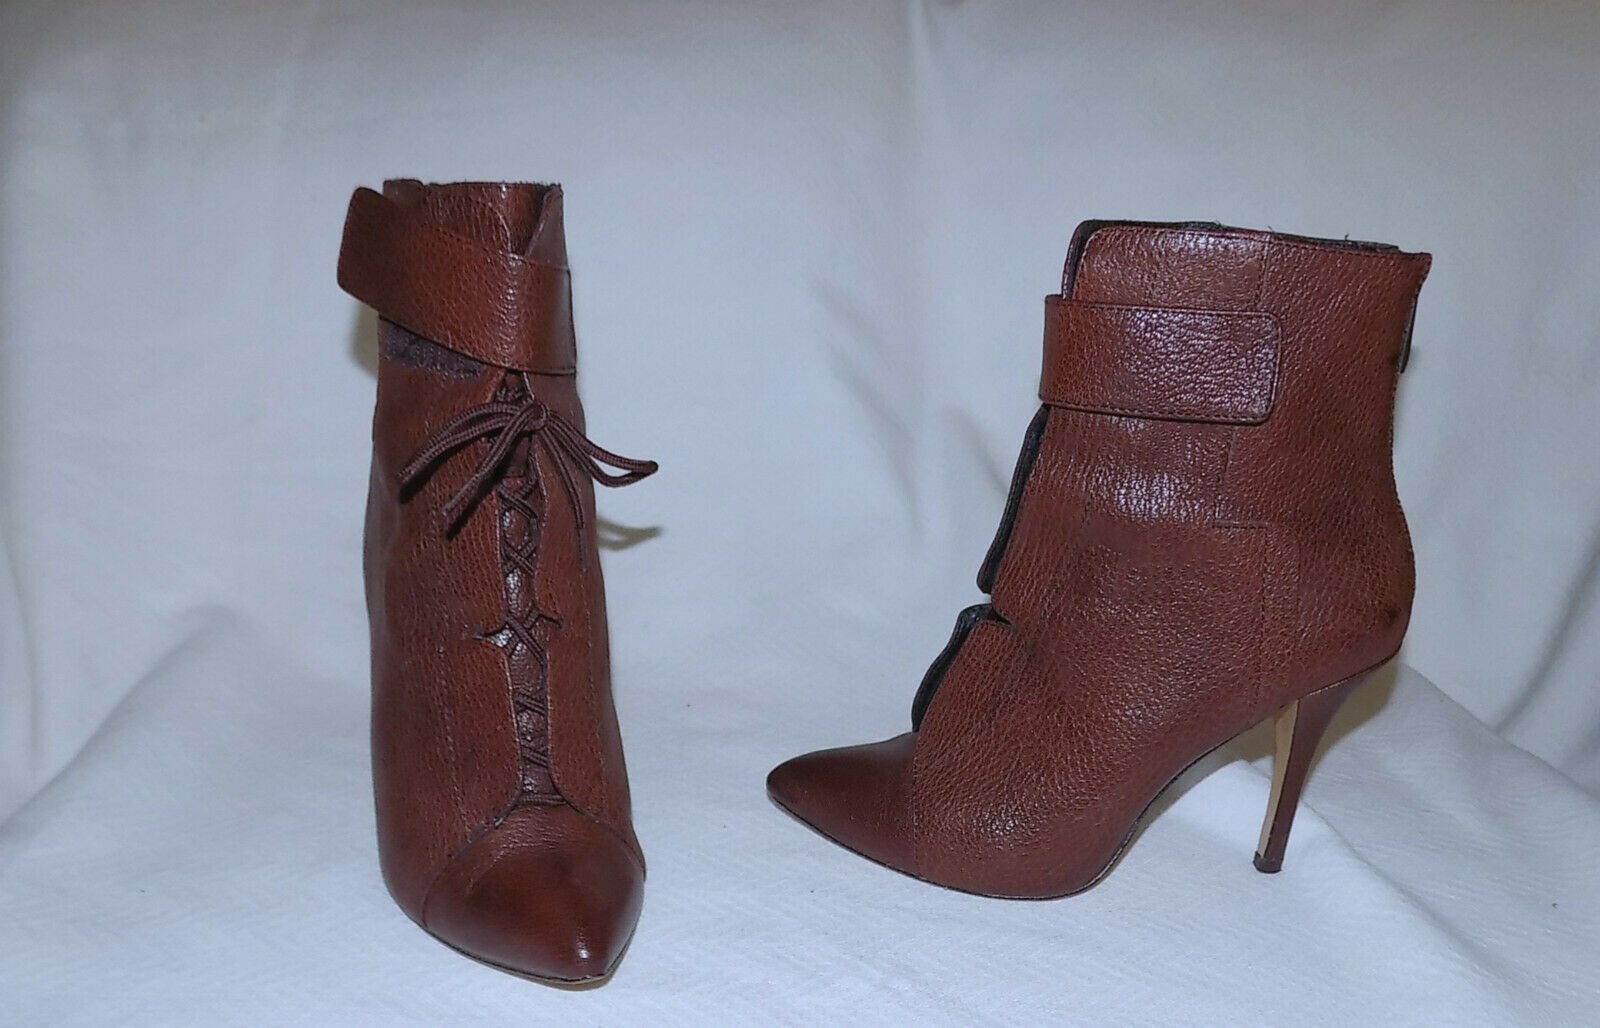 POUR La VICTOIRE All Leather Sexy Safety Strapped Booties-Size 6,1 2M-Brown-Good